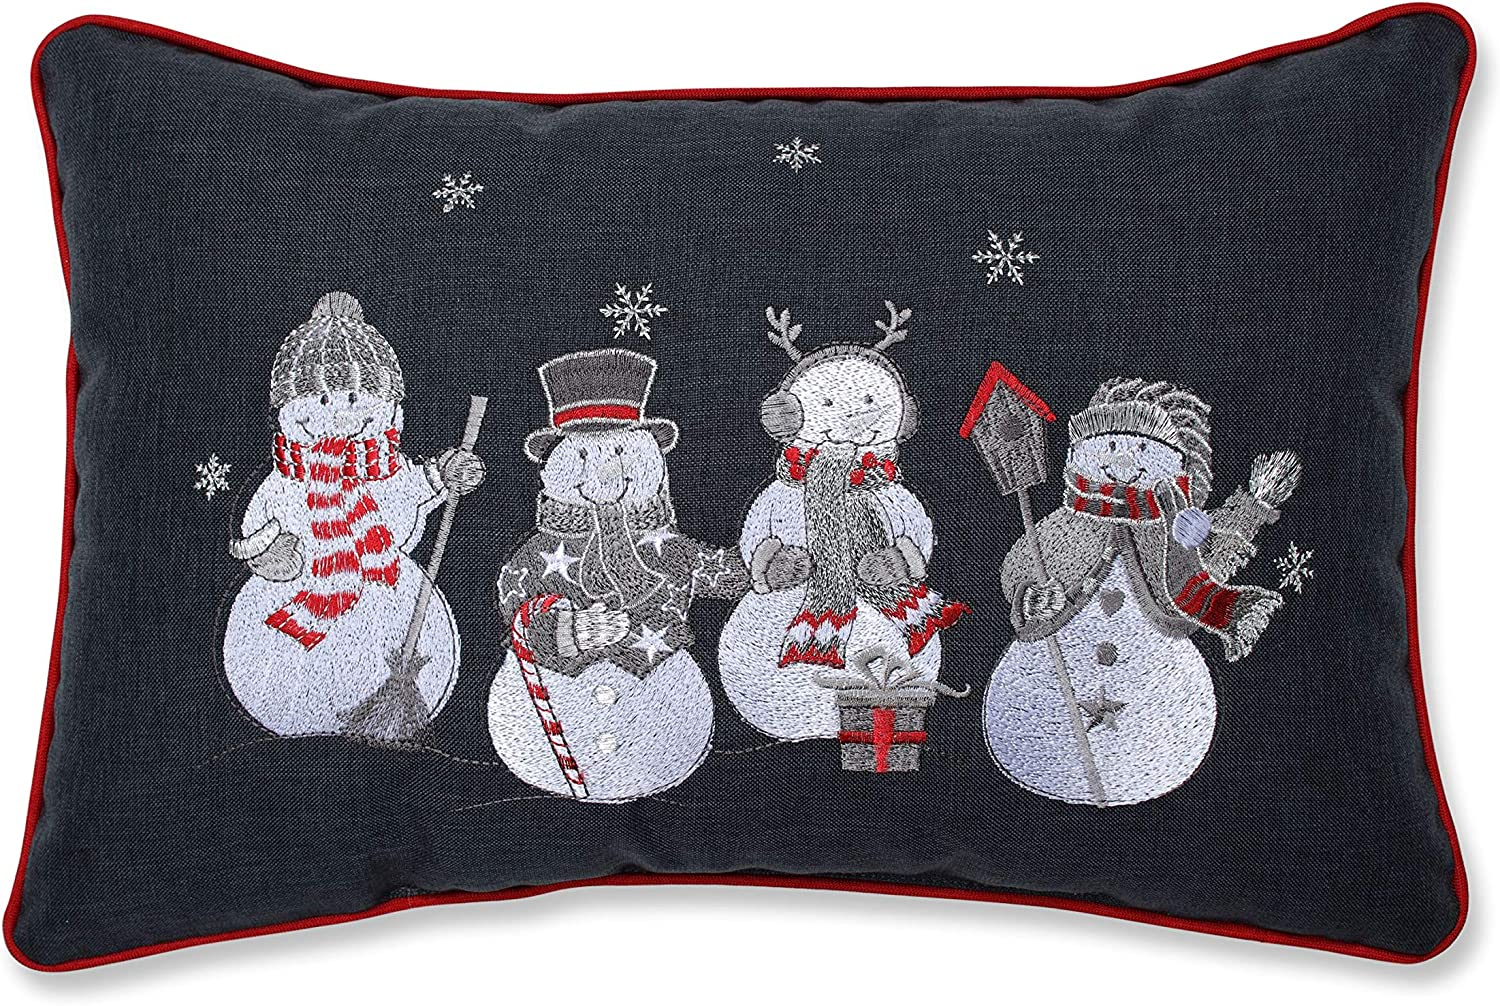 "Pillow Perfect Christmas Frosty & Friends Decorative Lumbar Pillow, 12"" x 18"", Multicolored"